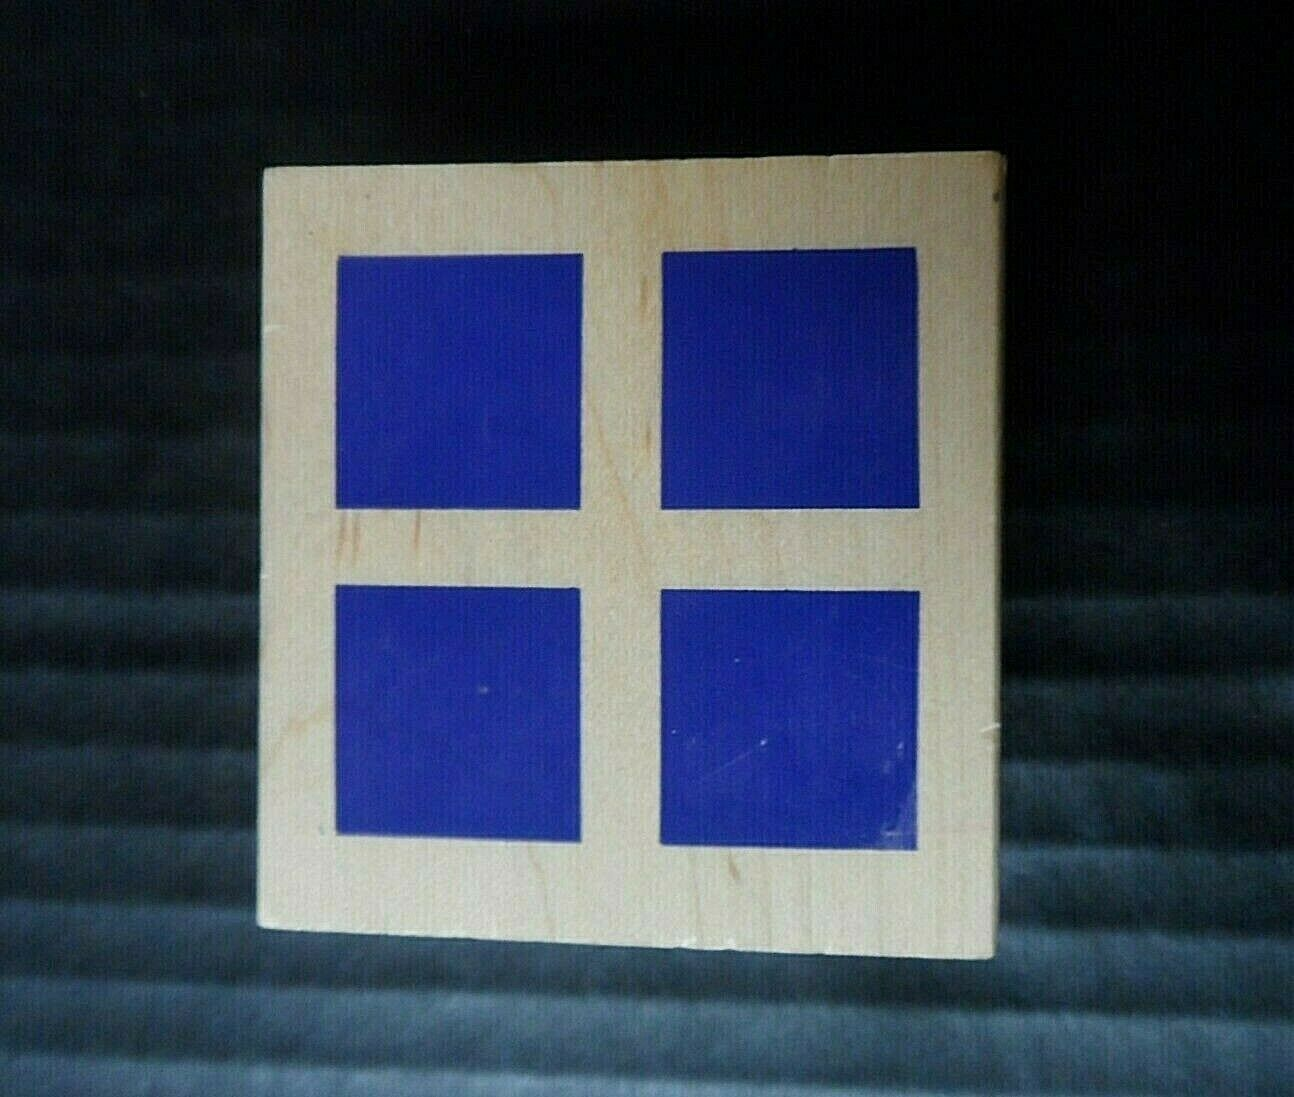 All Night Media Rubber Stamp Squares Four Square Backdrop Background - $11.09